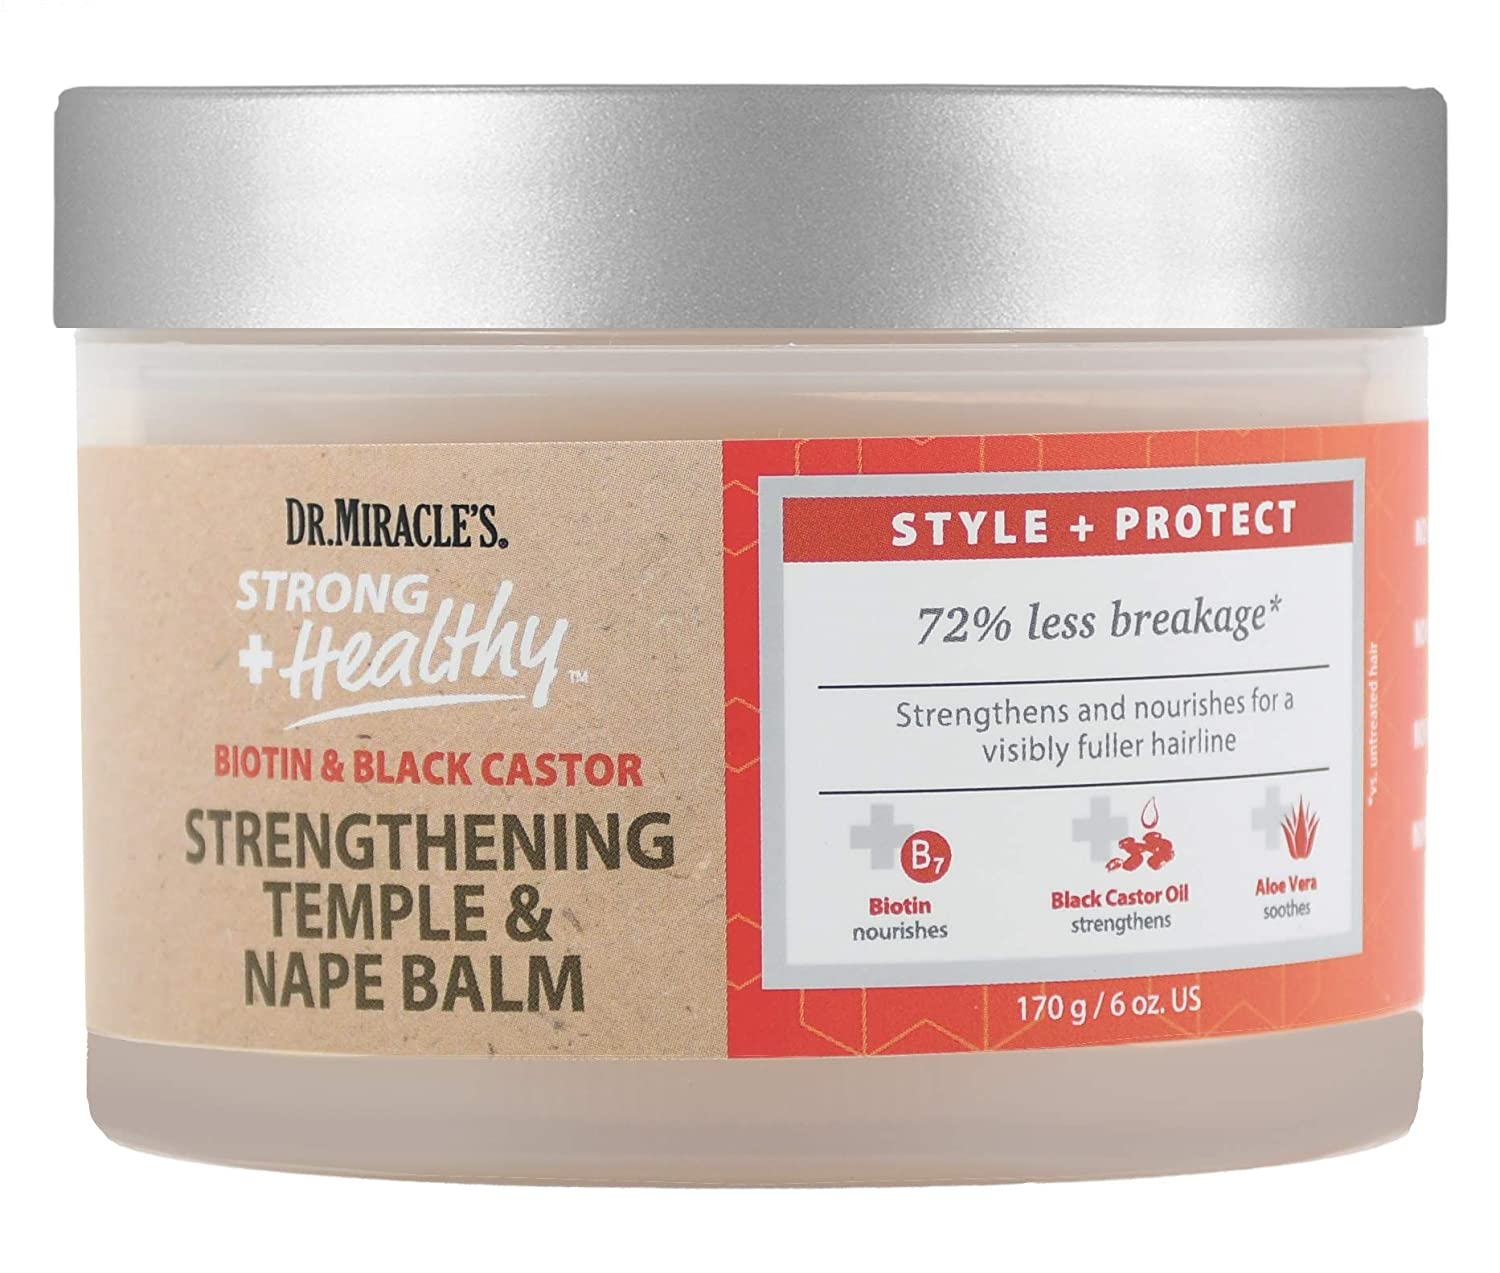 Dr. Miracles Strong & Healthy Temple & Nape Balm. Contains Aloe Vera and Black Castor Oil for length retention and growth.